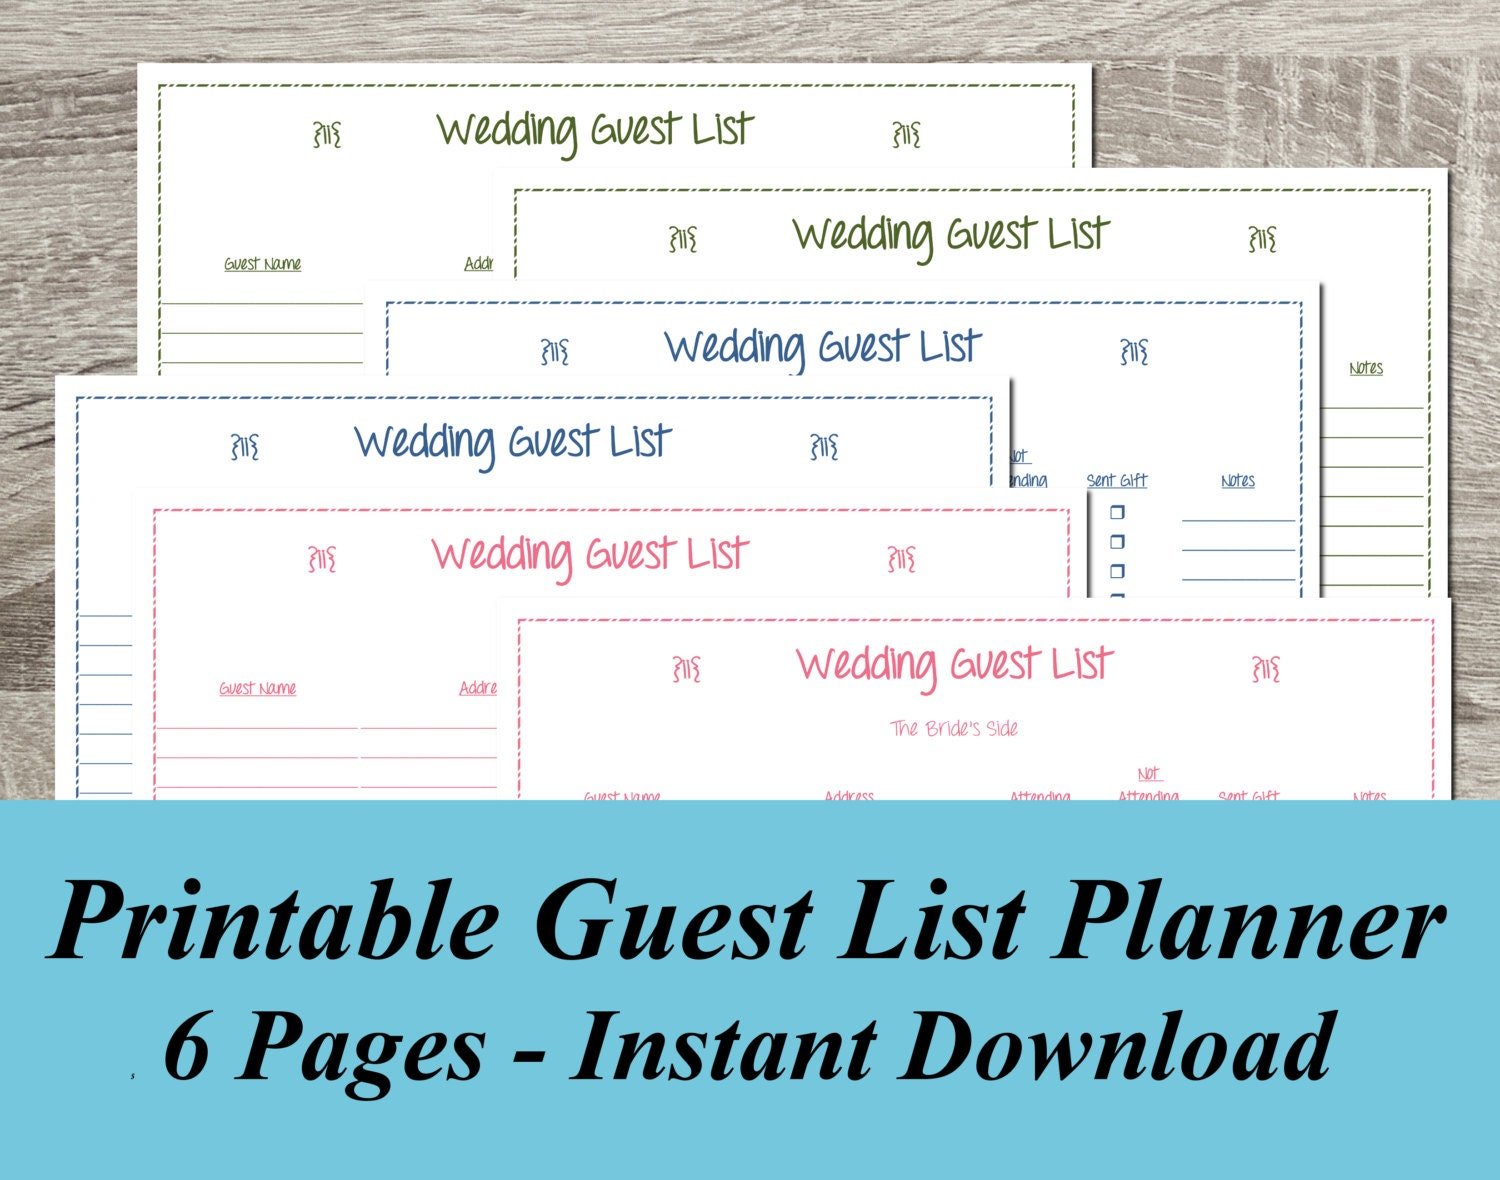 INSTANT DOWNLOAD Wedding Guest List PDF Wedding Planning 6